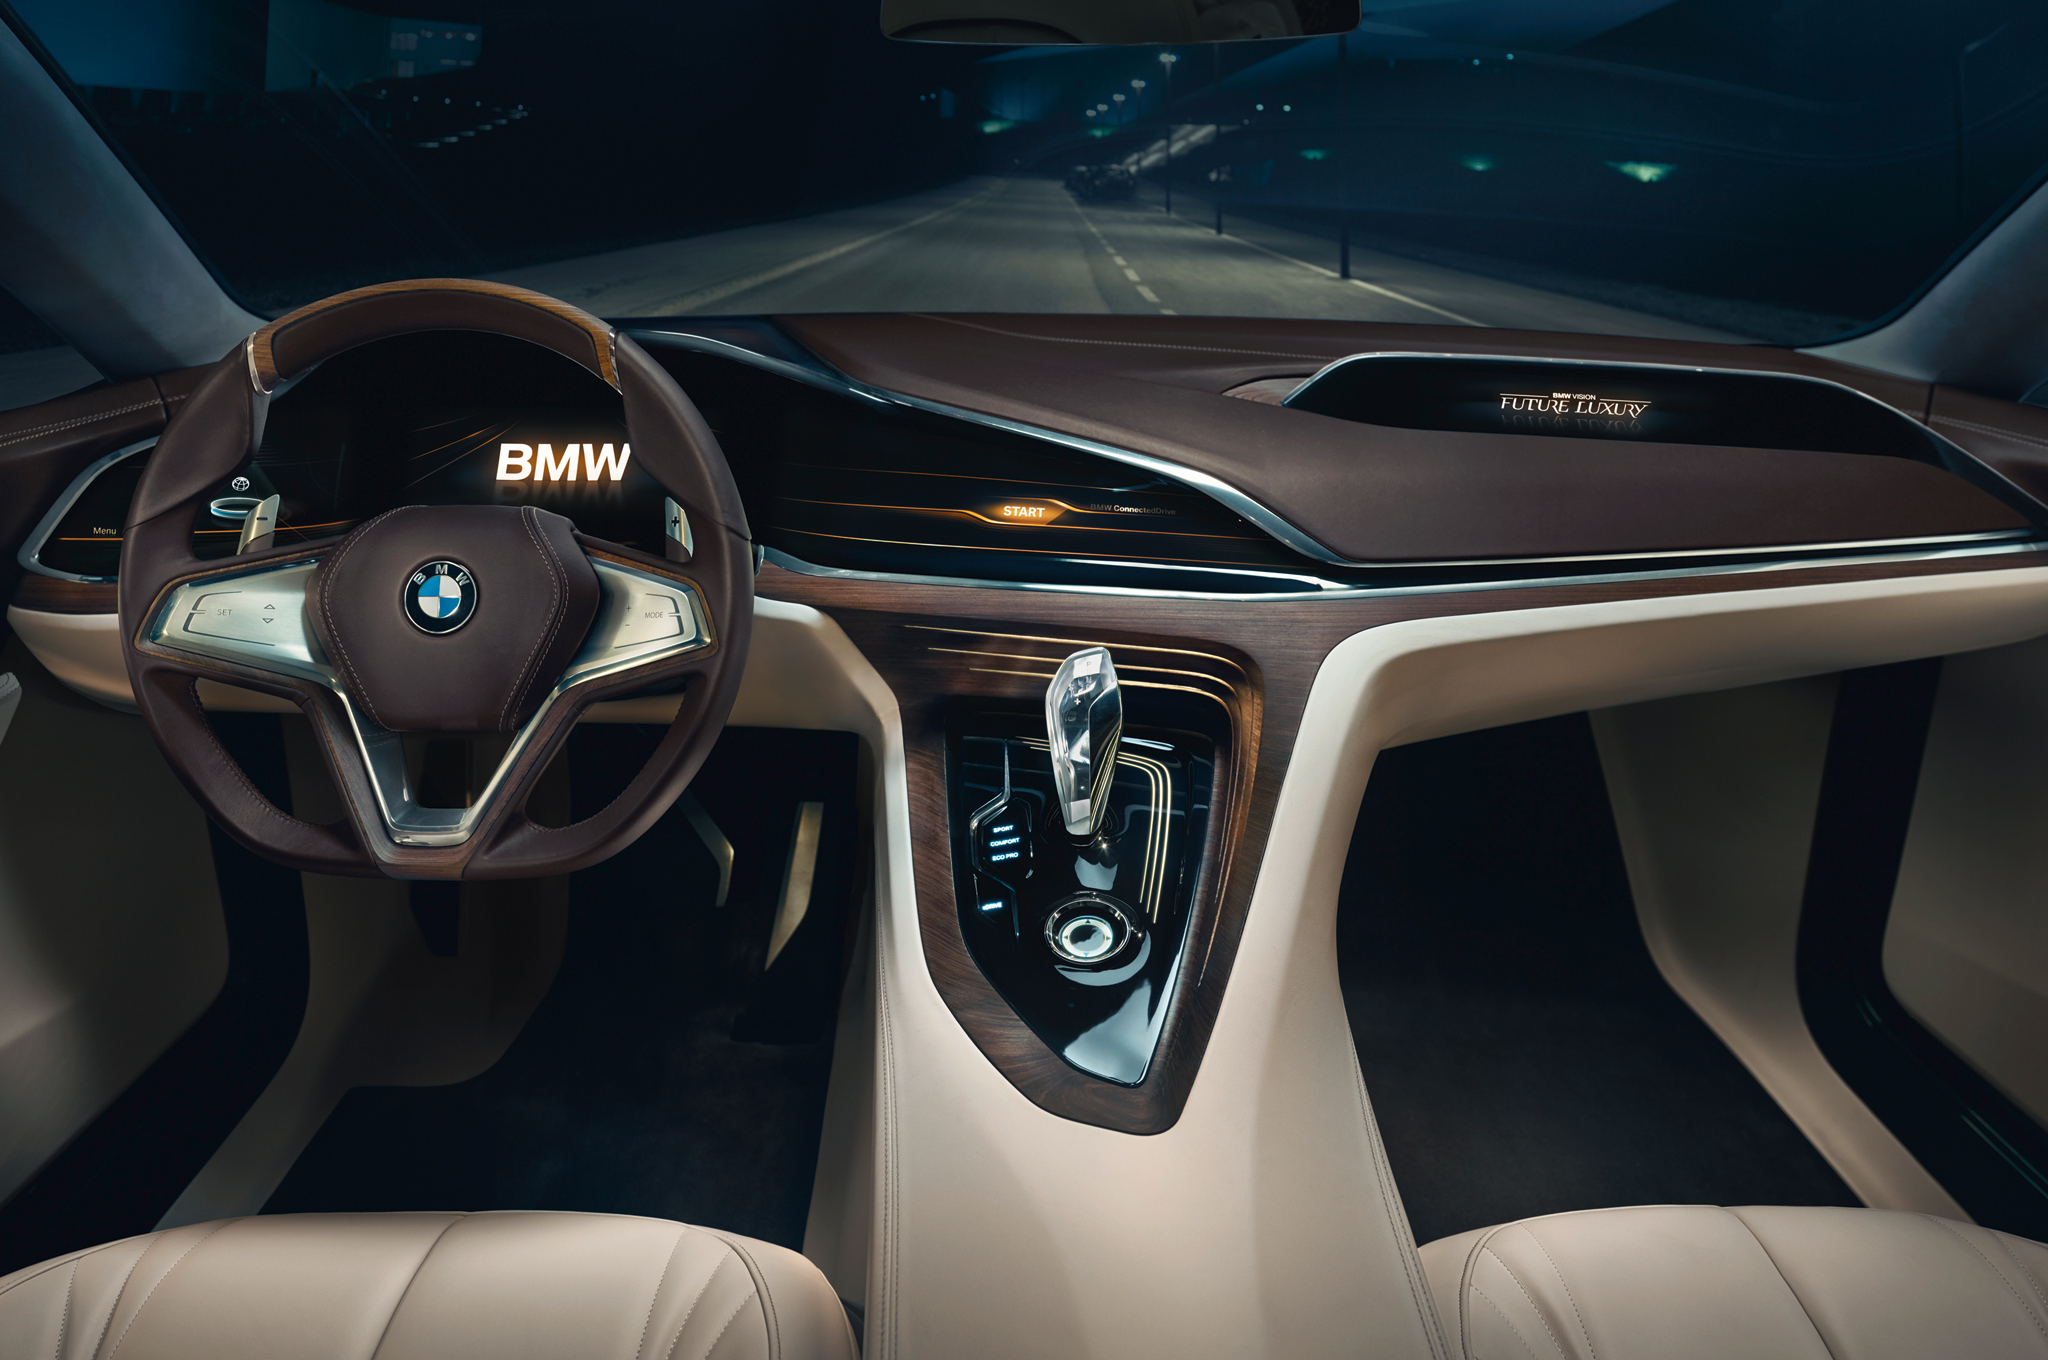 Bmw Concept Car Interior Bmw Vision Future Luxury Concept Interior